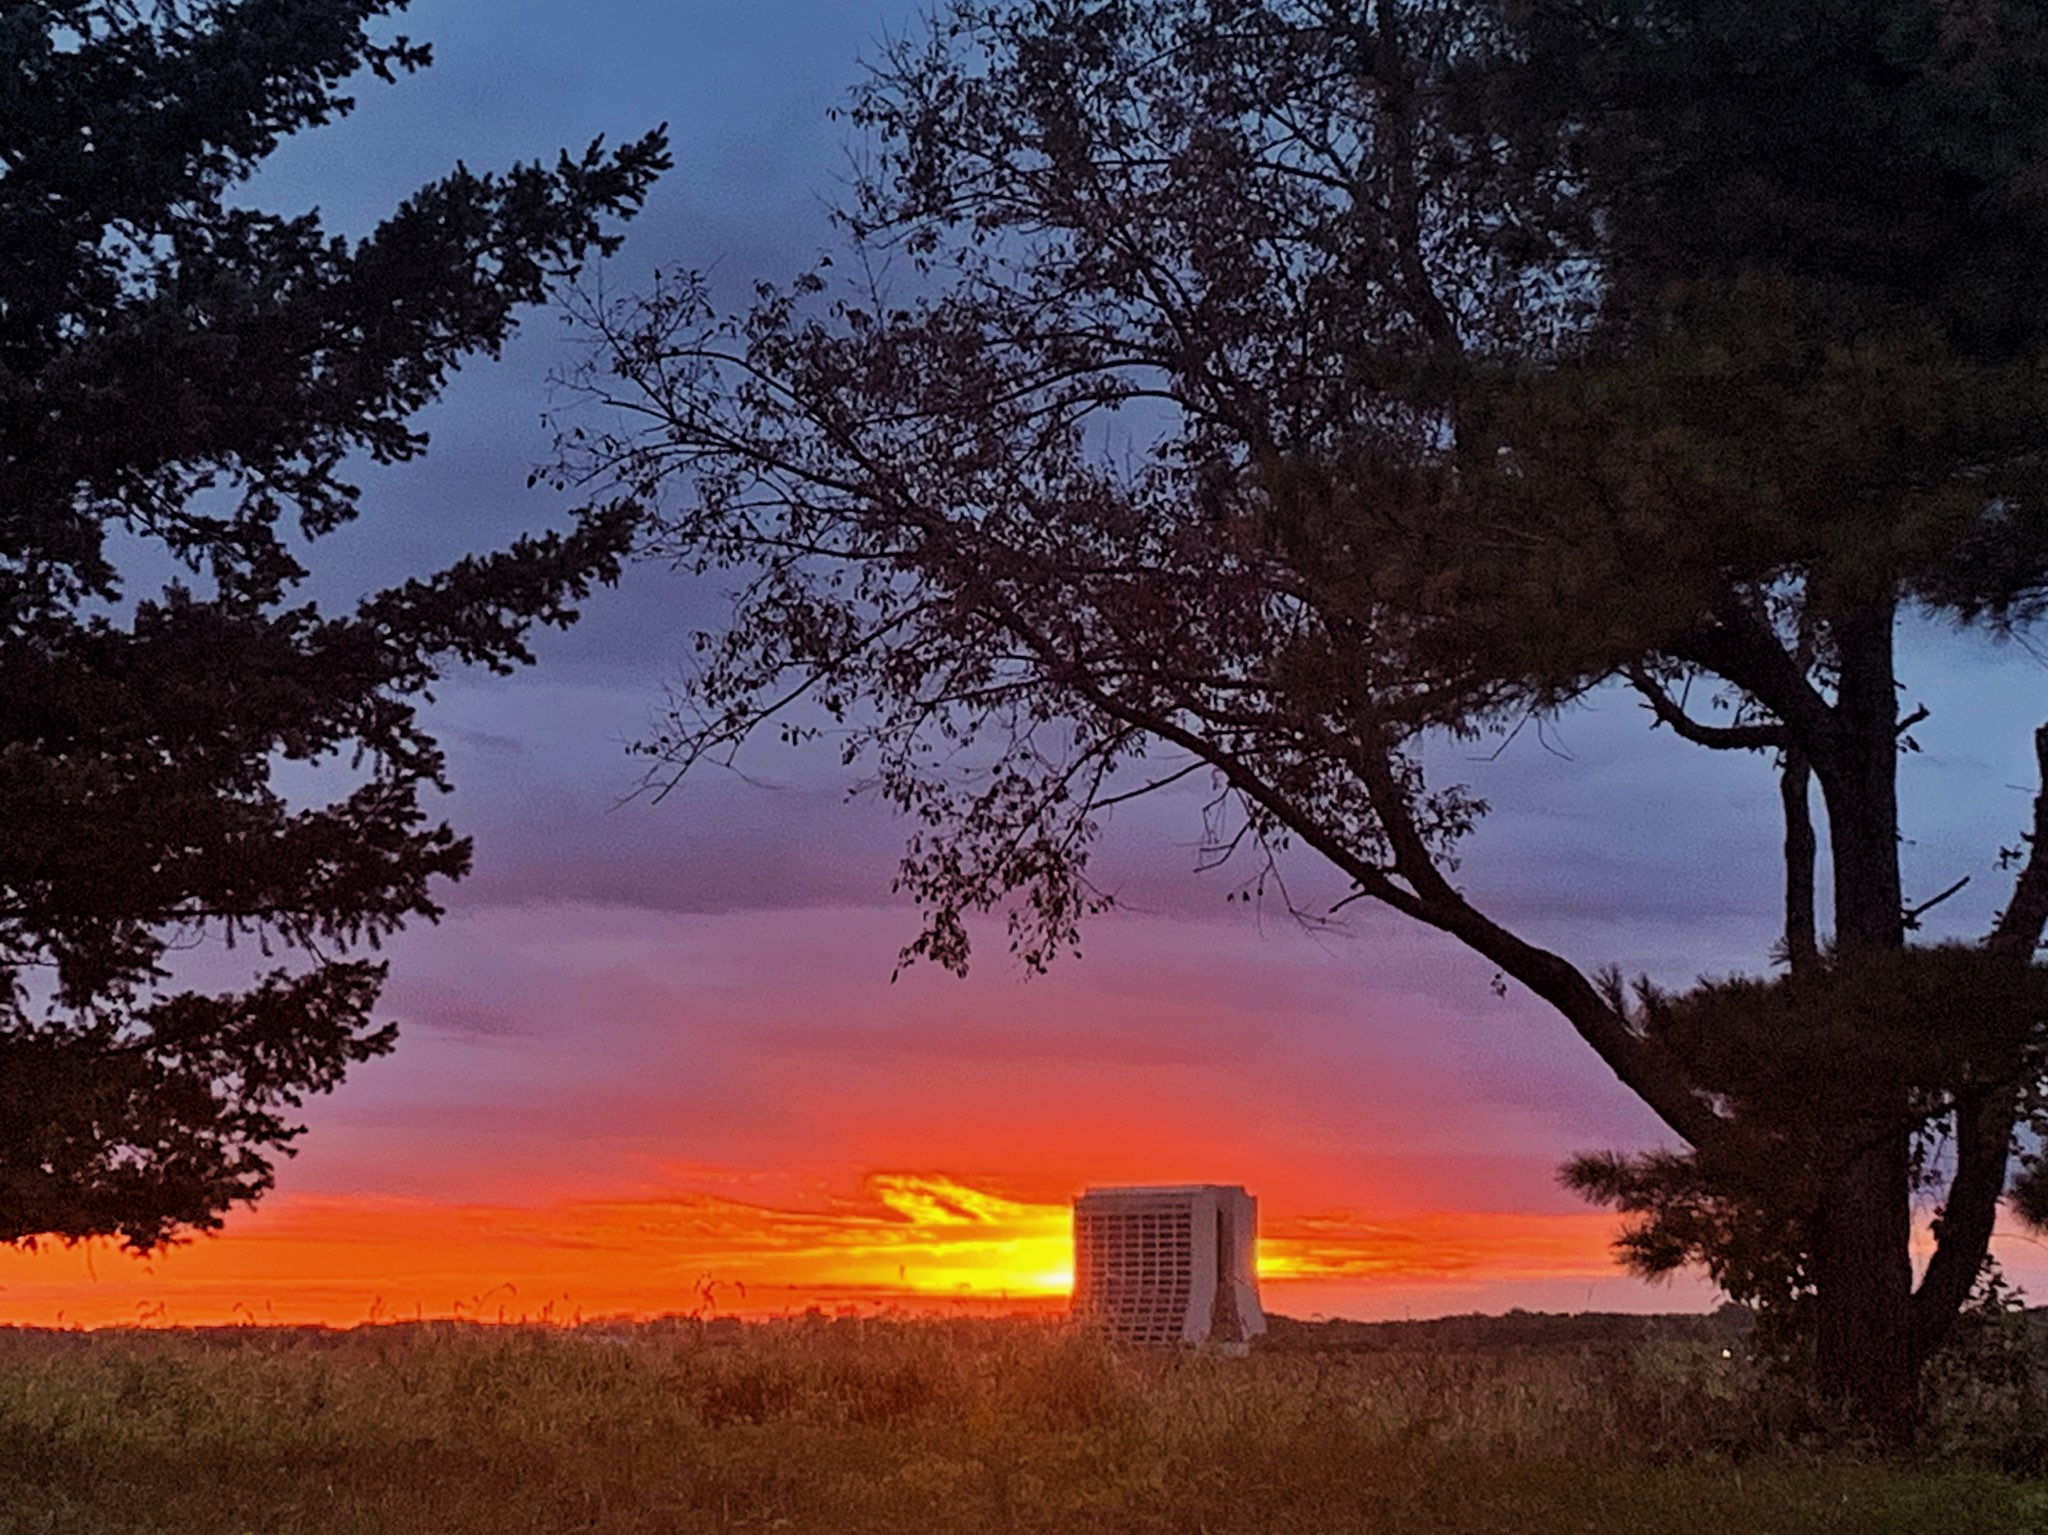 The sun peeps through the clouds, pouring molten gold on the sky, just before setting behind Wilson Hall on a cloudy Sept. 29. In this moment, one can imagine the fabled rising phoenix. nature, landscape, sky, sun, sunset, cloud, building, Wison Hall Photo: Sudeshna Ganguly